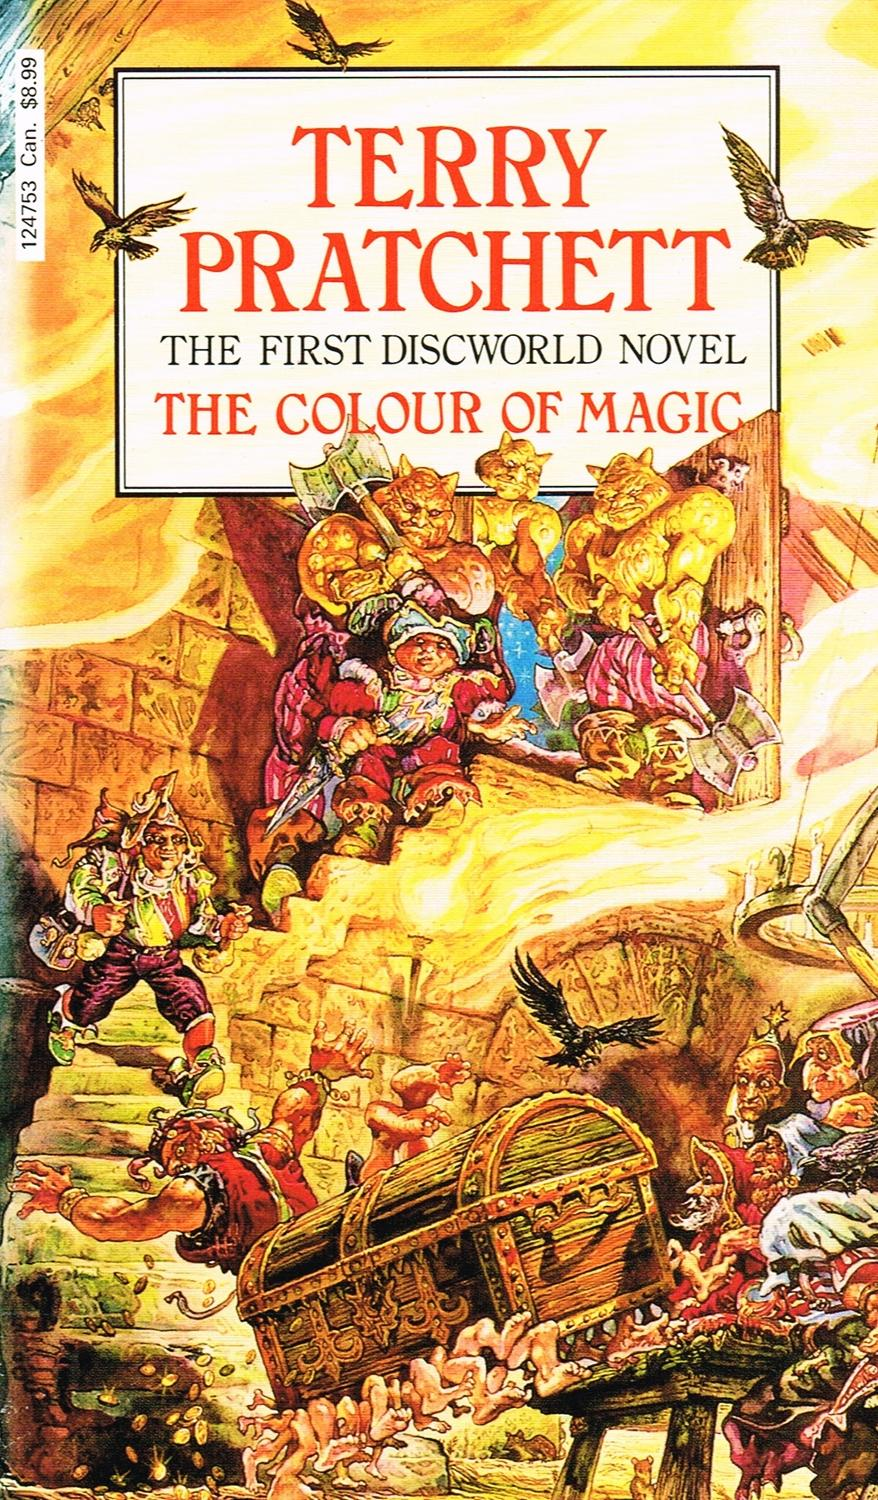 The Colour Of Magic The First Discworld Novel By Sir Terry Pratchett New Soft Cover 1985 Sapphire Books